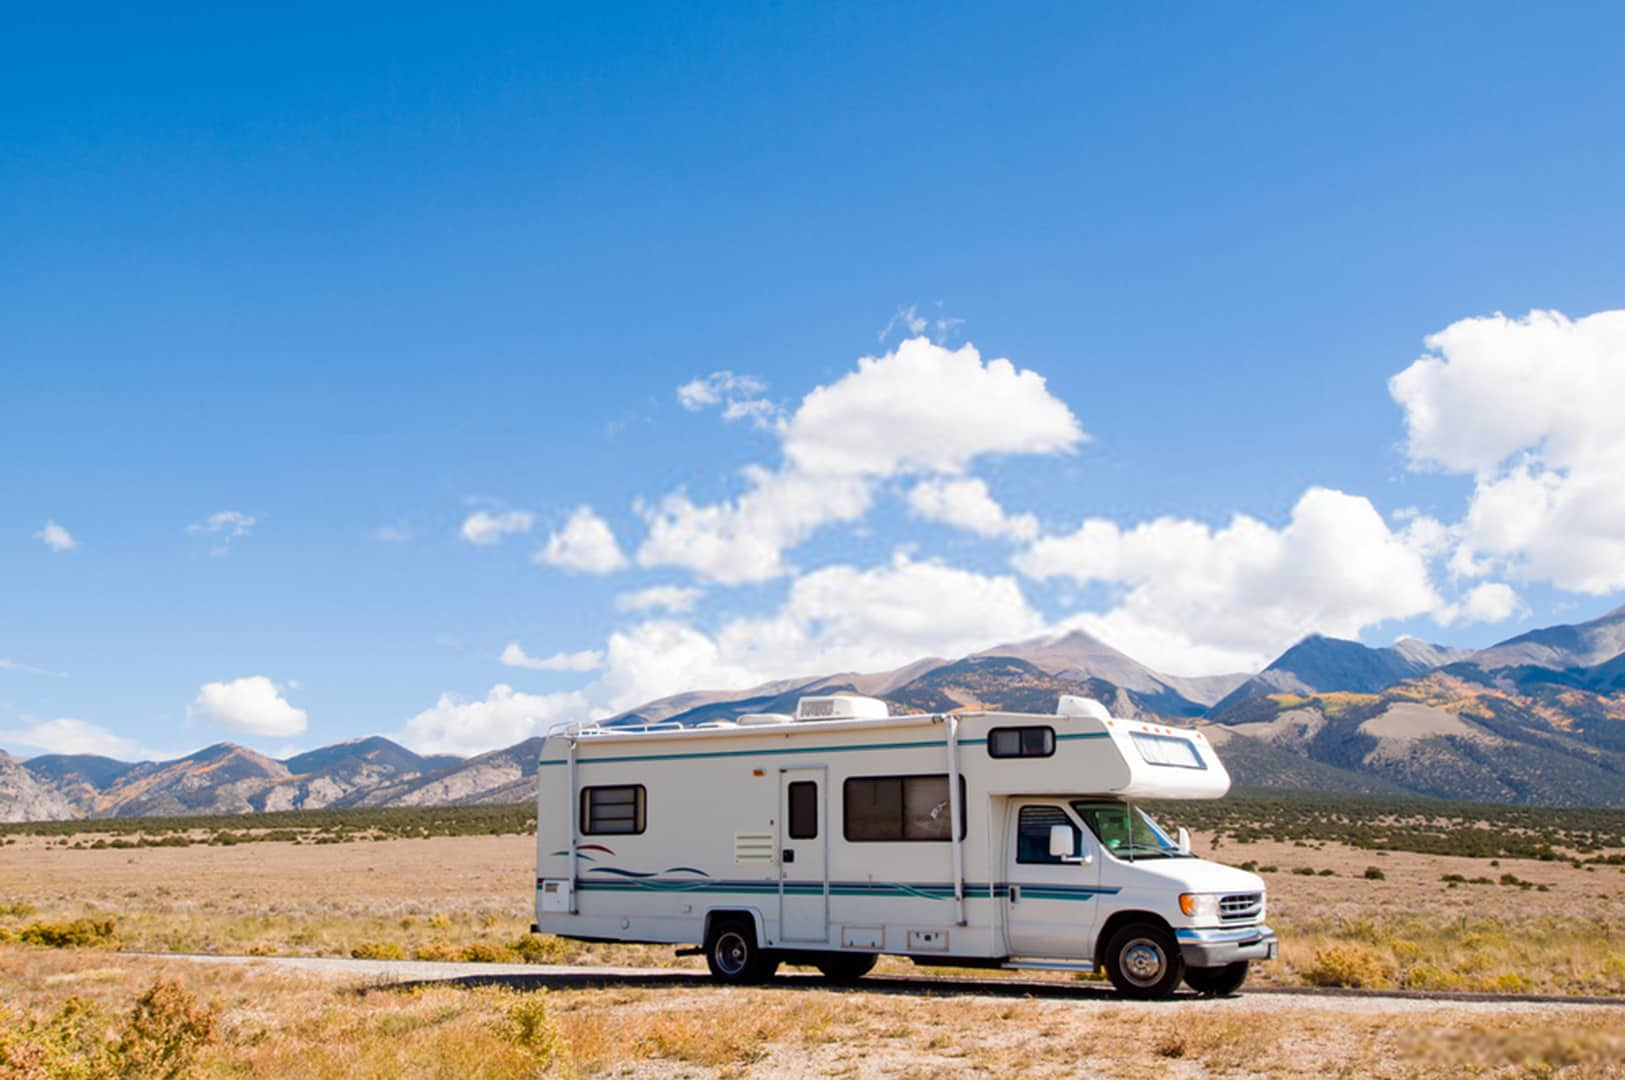 The 15 Best RV Roof Sealants And Coatings To Buy In 2020